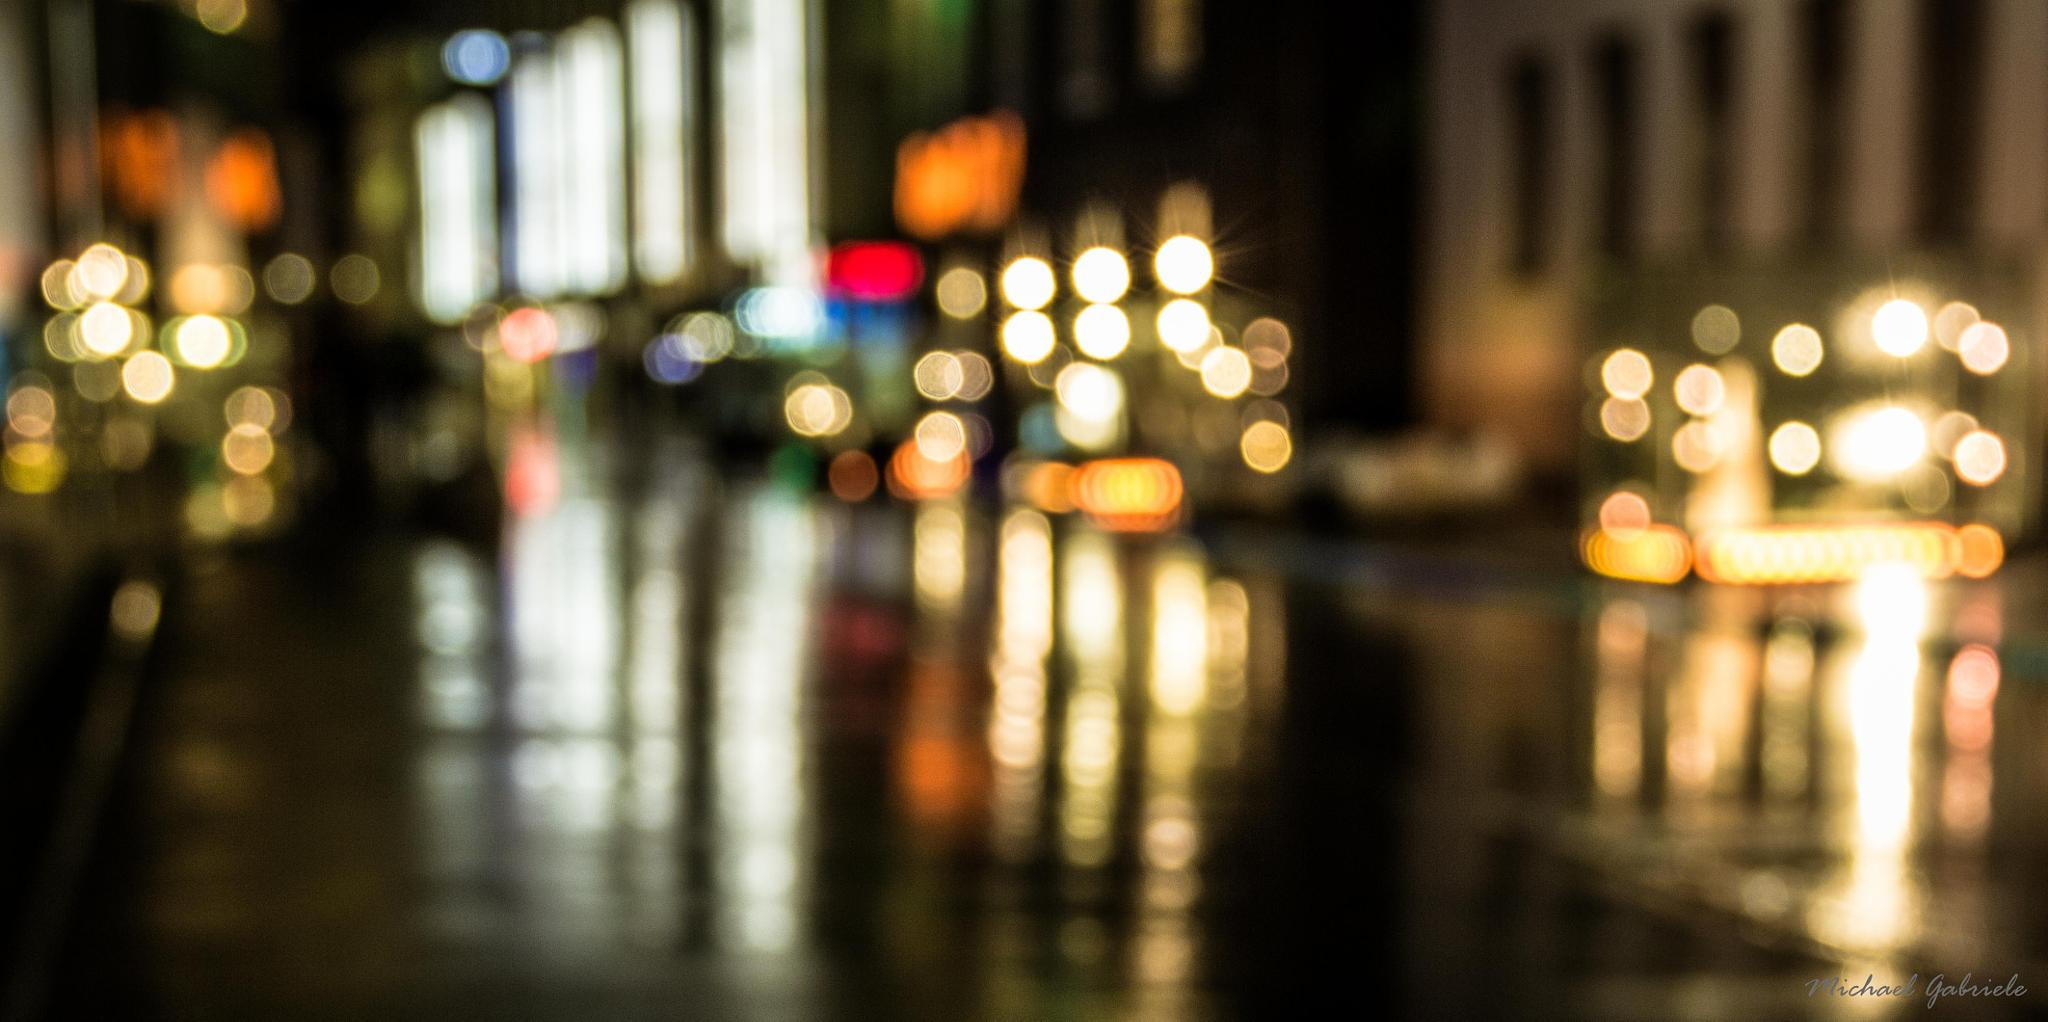 City Lights by Michael Gabriele